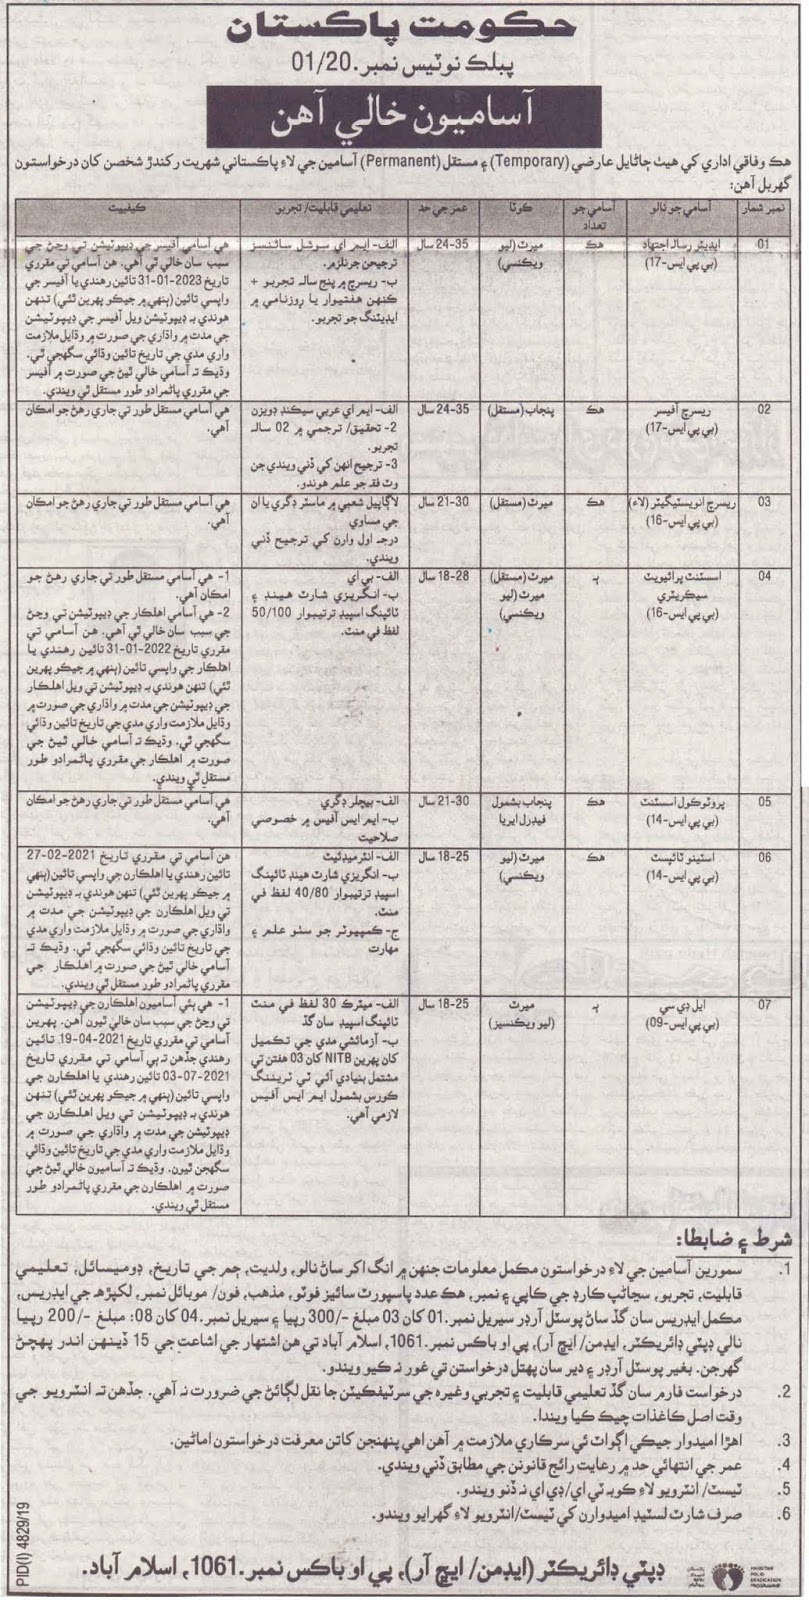 Federal Government Department Needs Temporary and Permanent Employees Jobs 2020